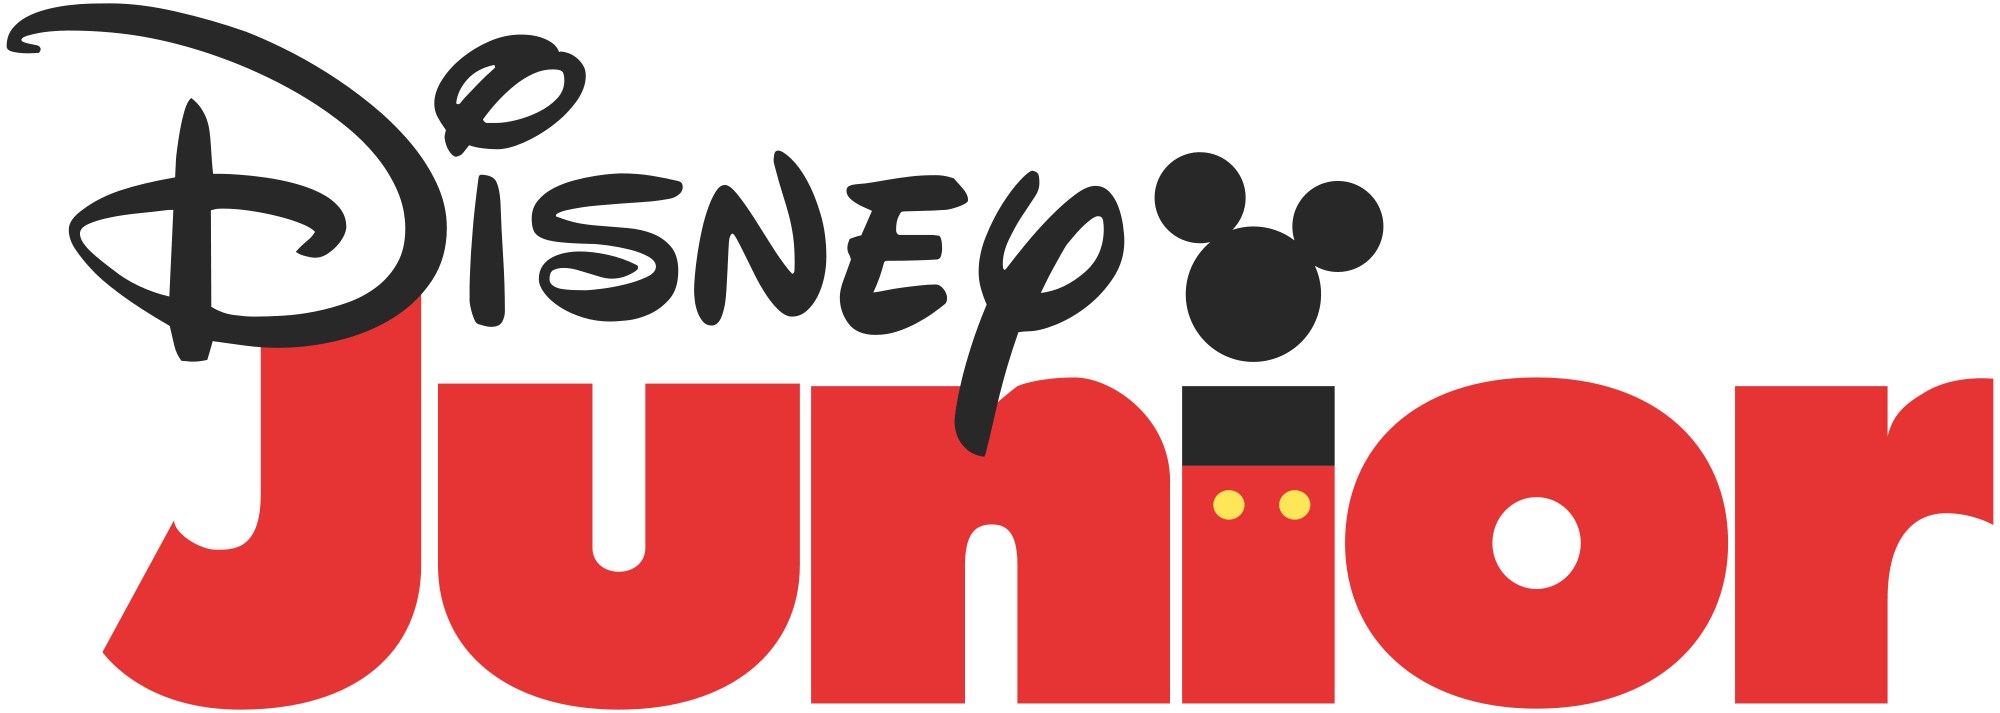 Disney jr logo png. Junior pinterest and logos